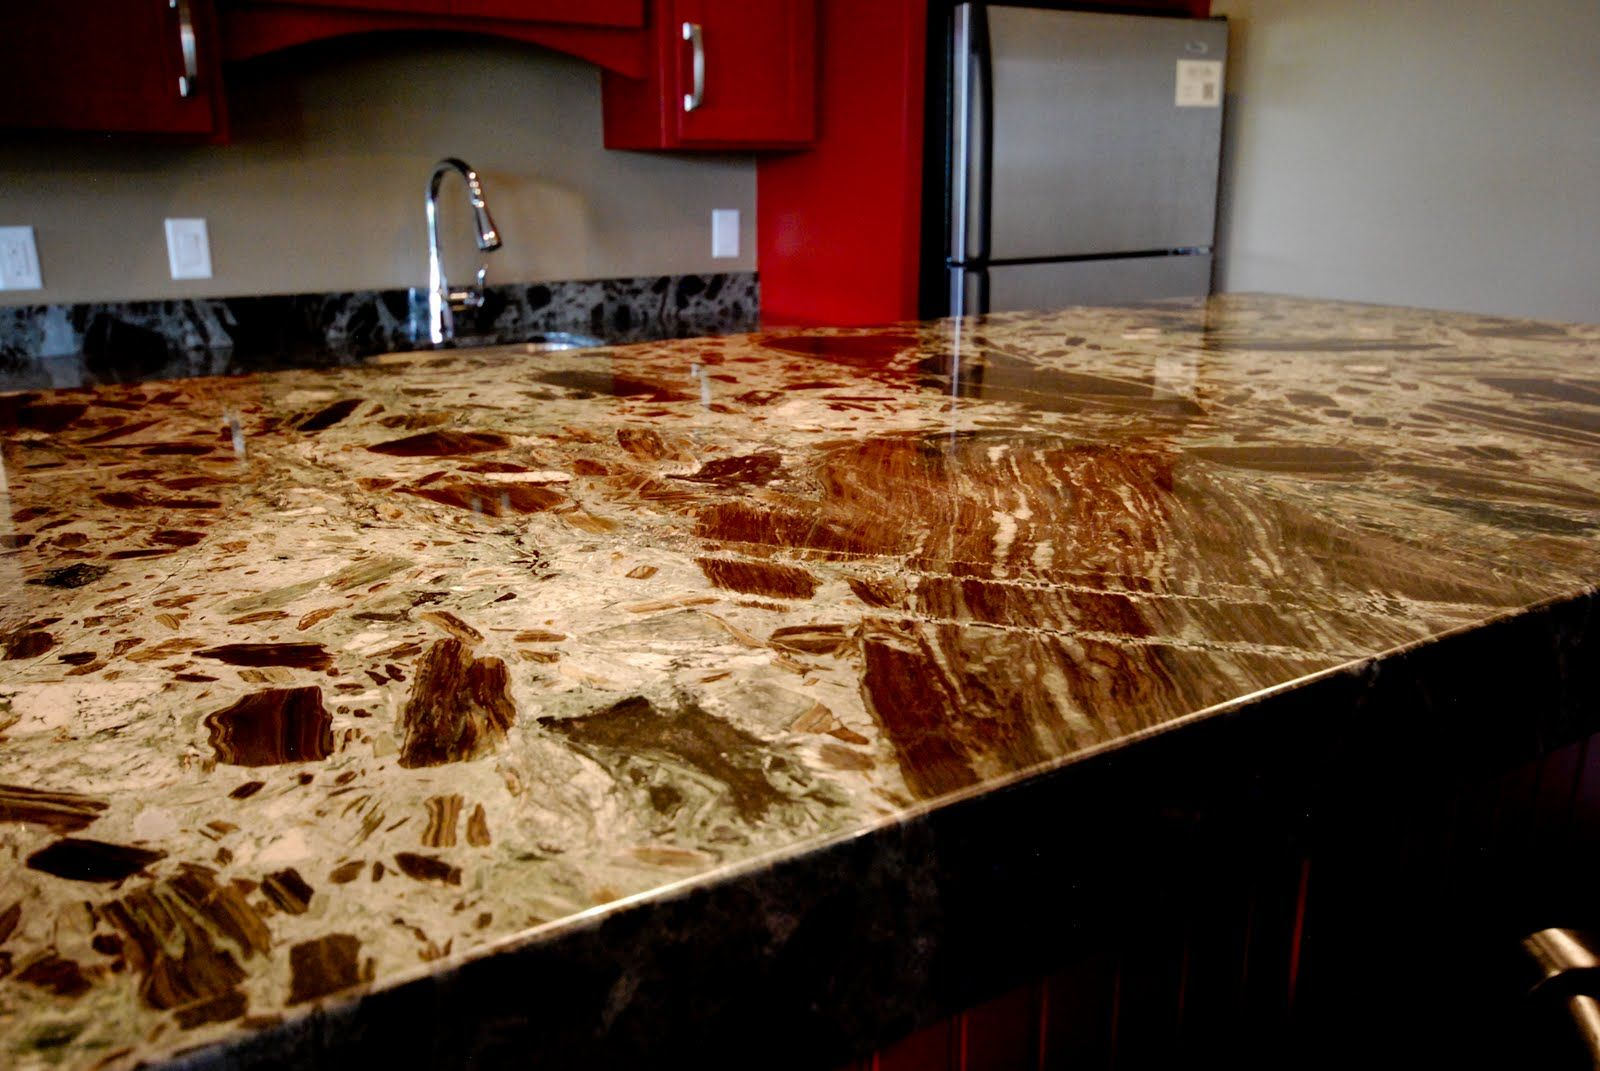 Merveilleux PETRIFIED WOOD BY CAESAR STONE. Amazing What They Can Do These Days! |  Styling Beautiful Houses | Pinterest | Petrified Wood, Woods And Wood  Countertops.